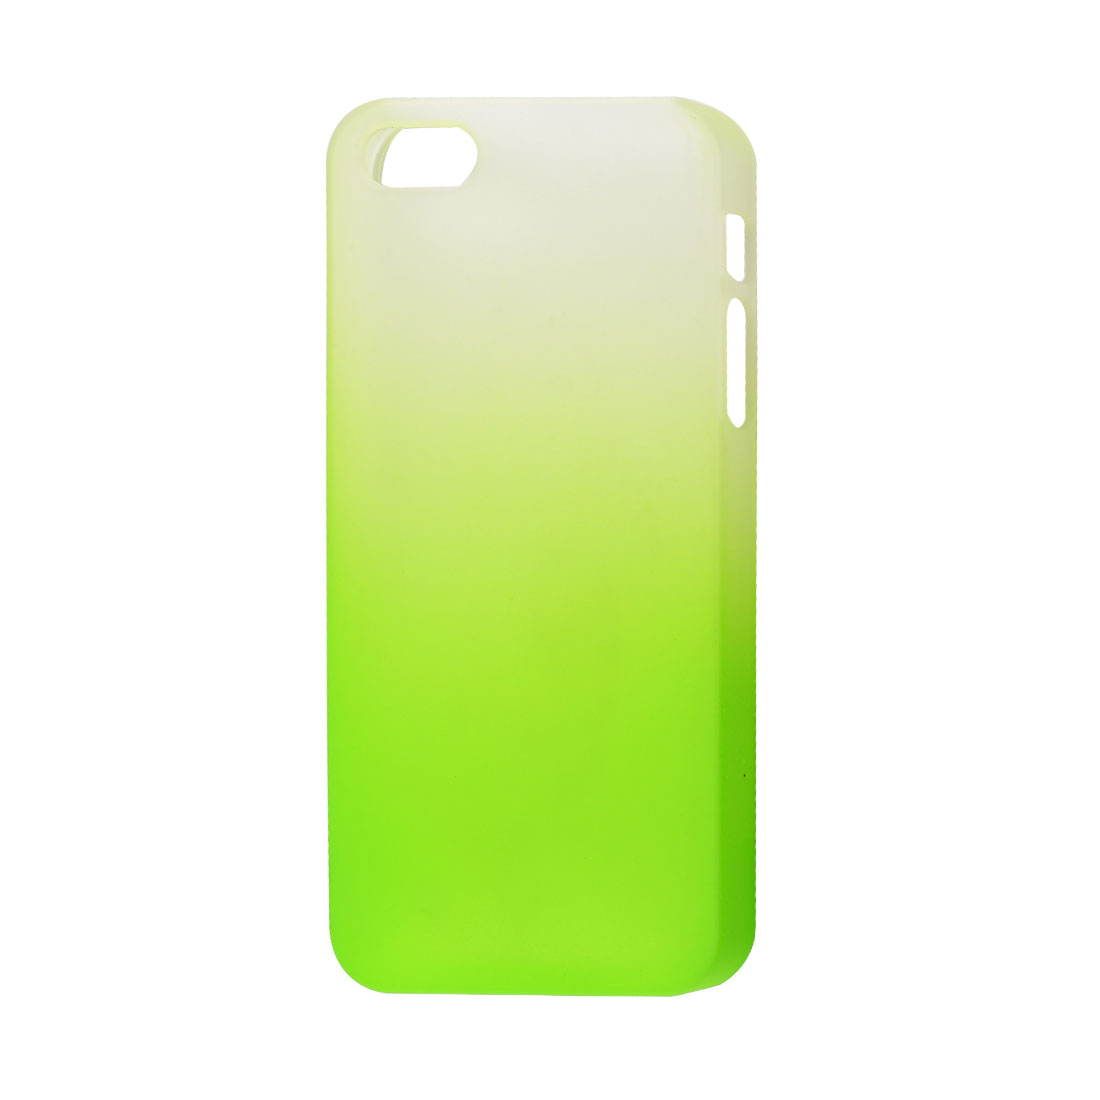 Gradient Green Hard Back Case Cover for Apple iPhone 5 5G